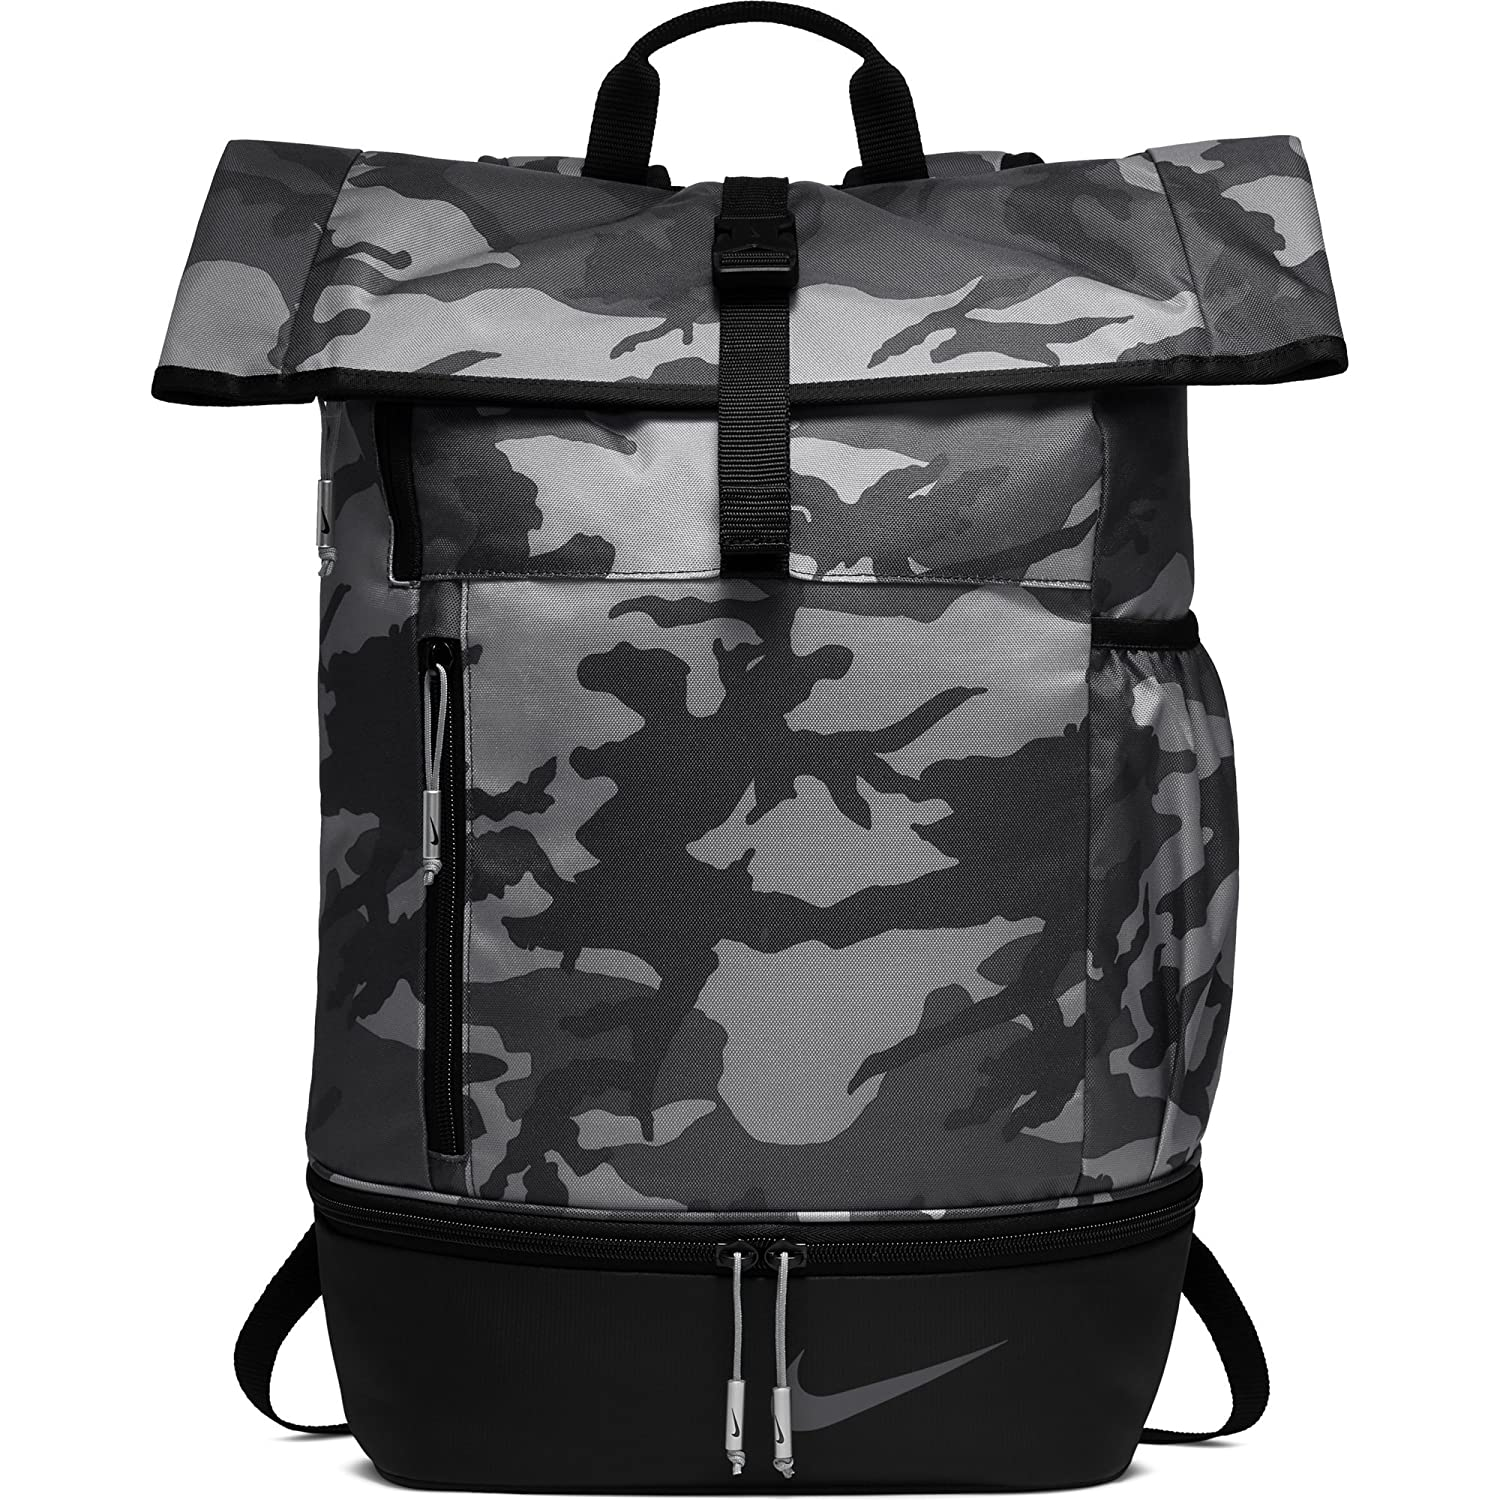 8fd3715dd9173 Amazon.com : NIKE Sport All Over Print Golf Backpack,  Anthracite/Black/Anthracite : Clothing